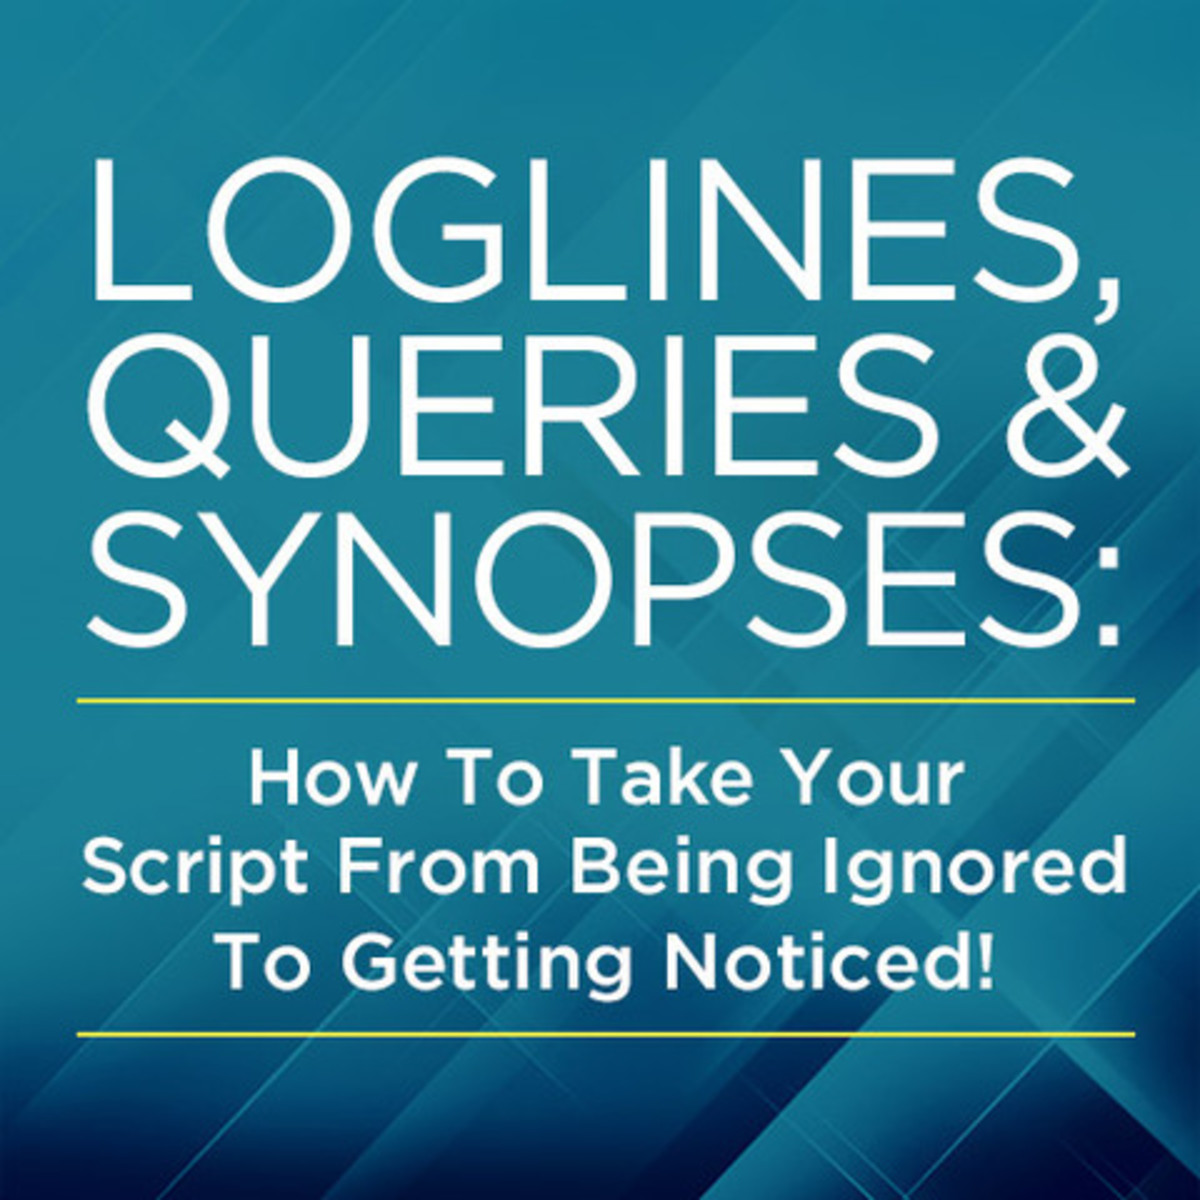 ws_loglines_queries_synopses-500_medium